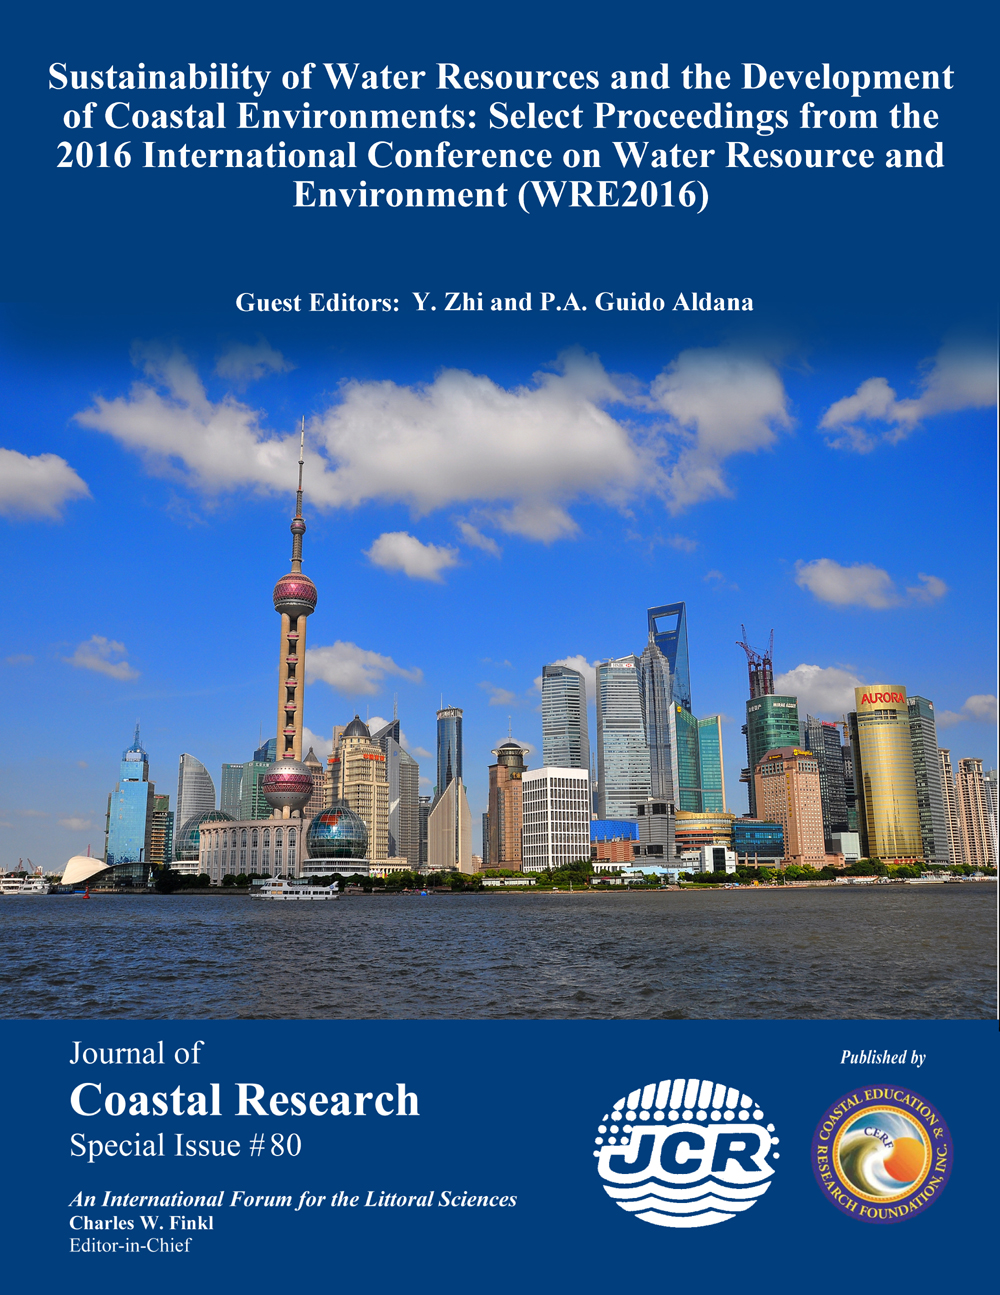 #80 Sustainability of Water Resources and the Development of Coastal Environments